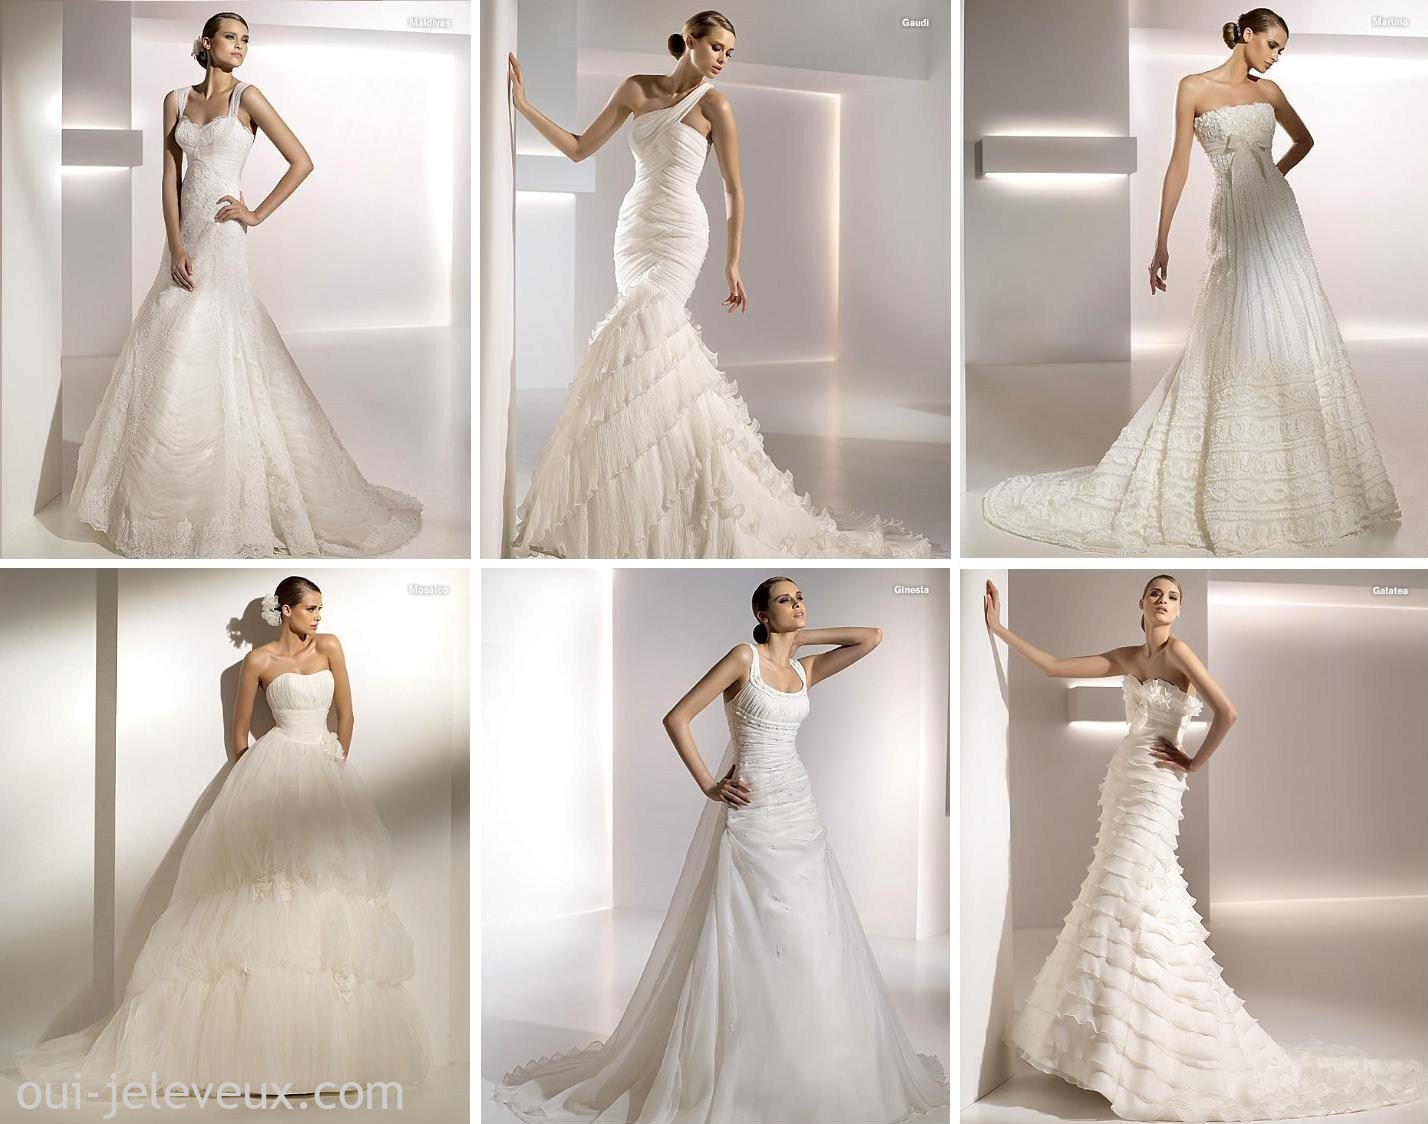 pronovias-collection-2010-Maldives-Gaudi-Martina-Mosaico-Gi.jpg